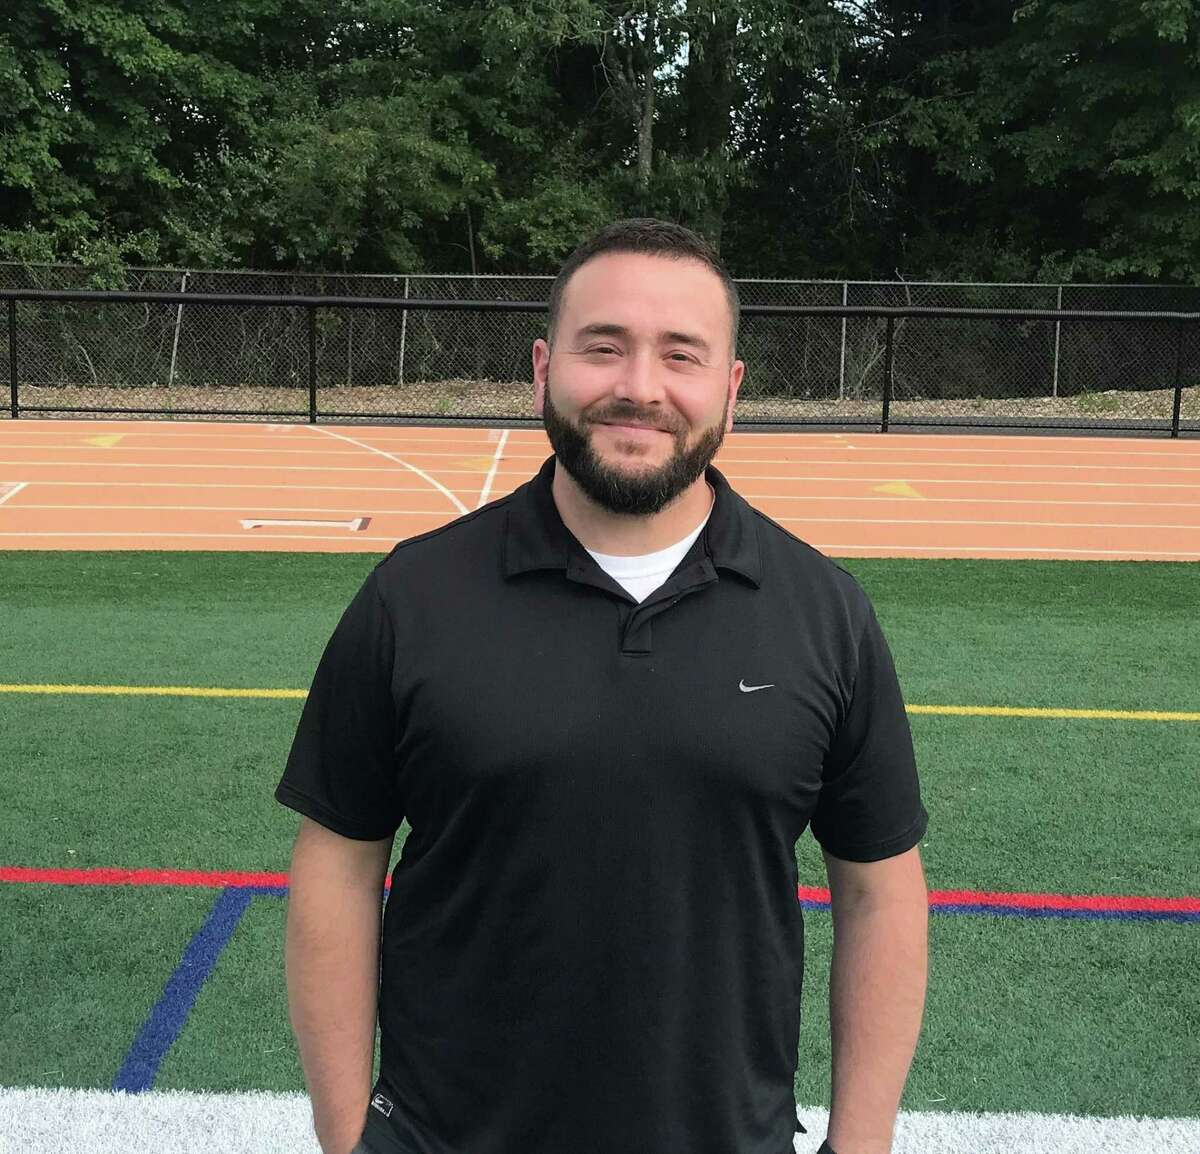 Scott Snell has switched gears. A coach the past 11 seasons, he is now Shelton's athletic coordinator.